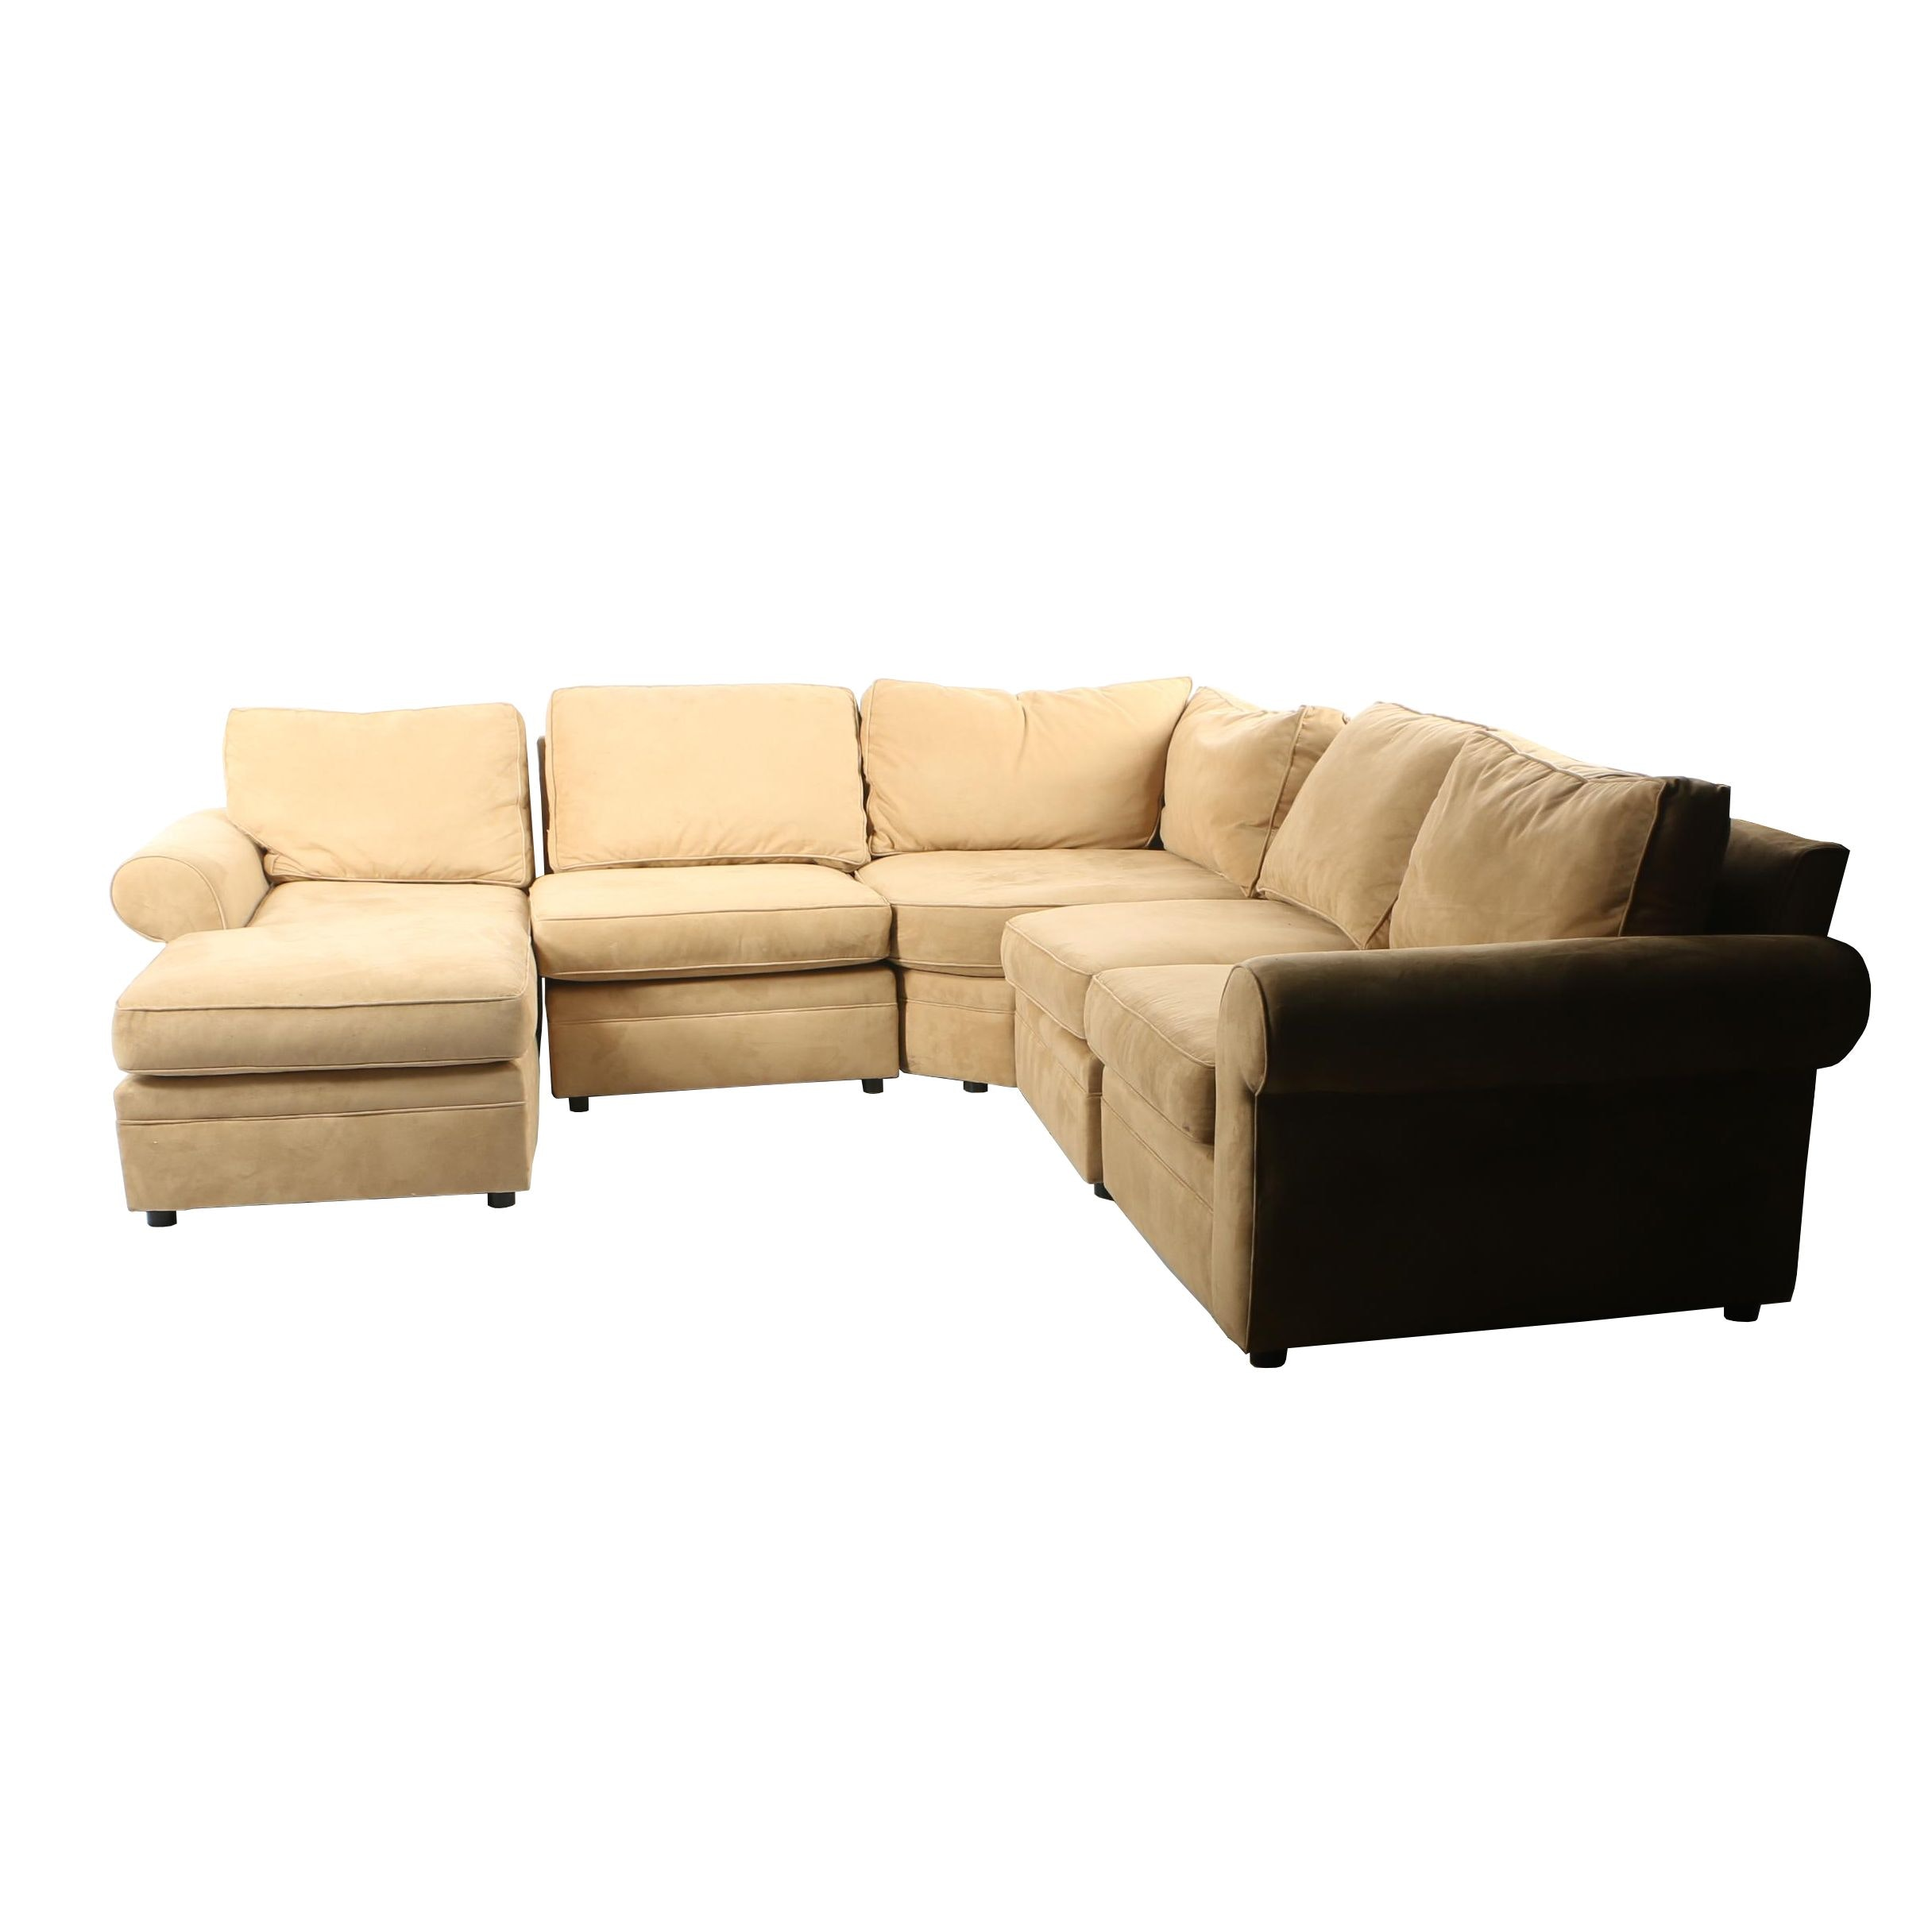 Tan Five Piece Sectional by Pottery Barn